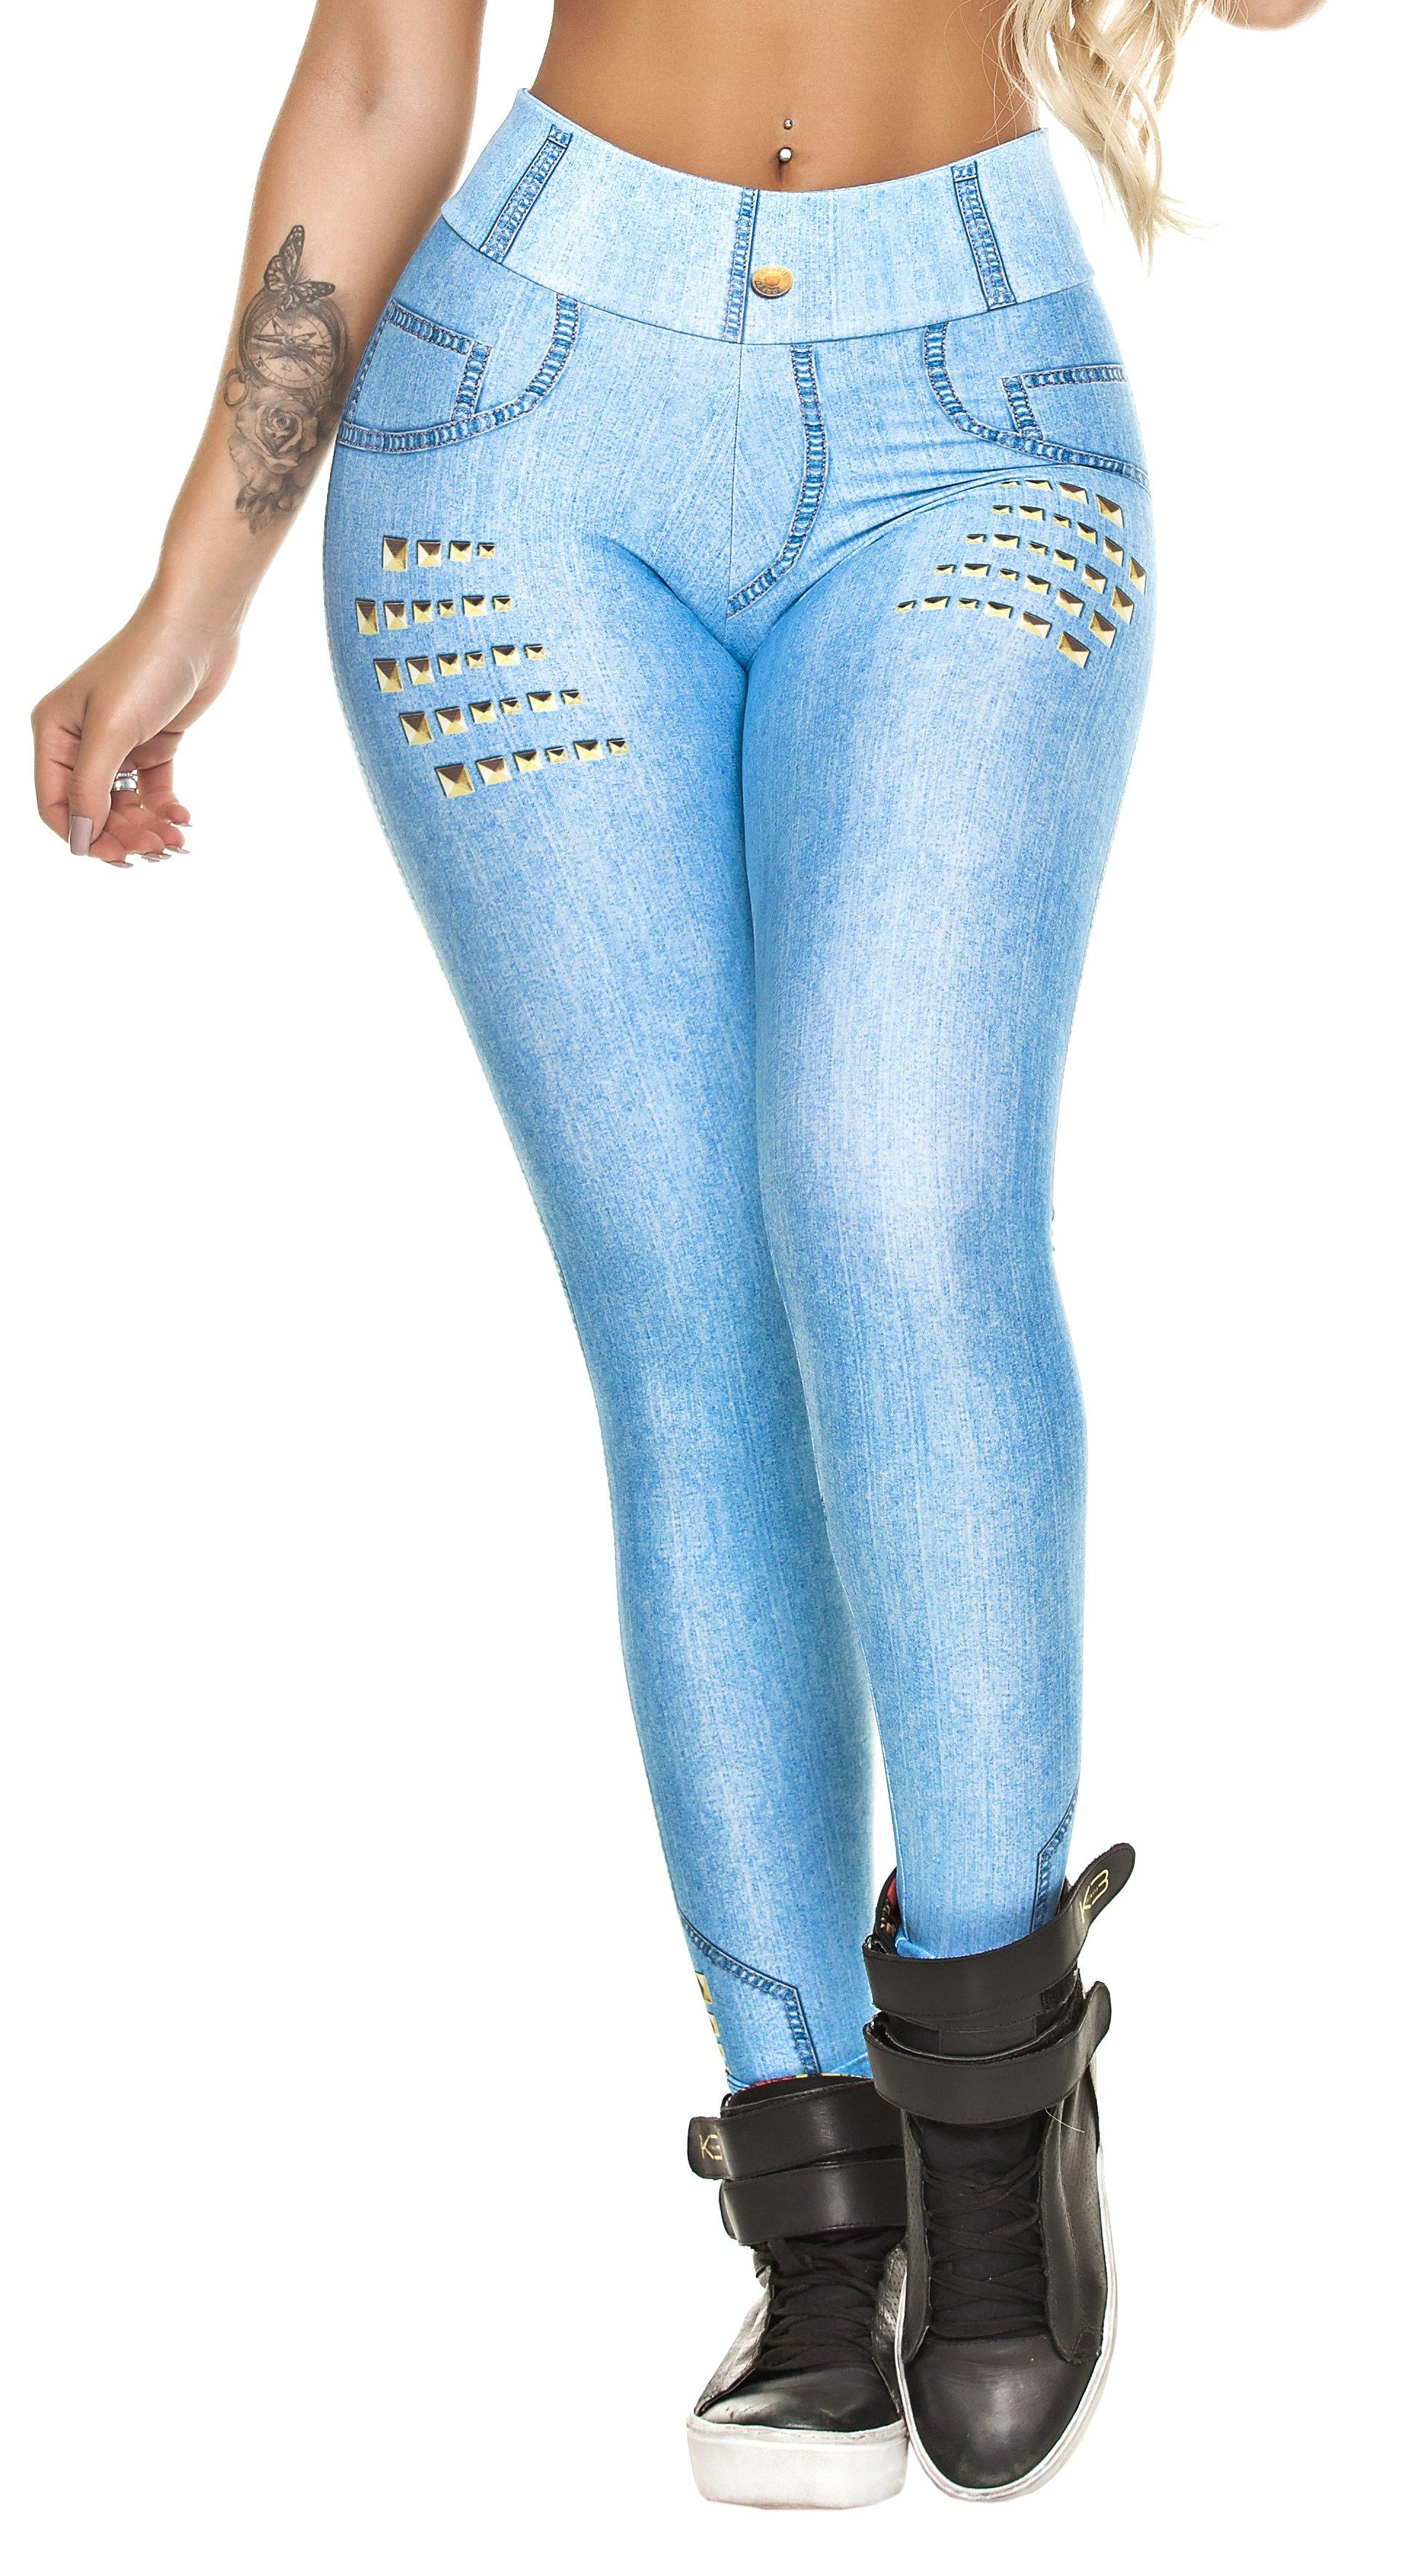 Brazilian Legging - Fake Jeans Light Blue Legging